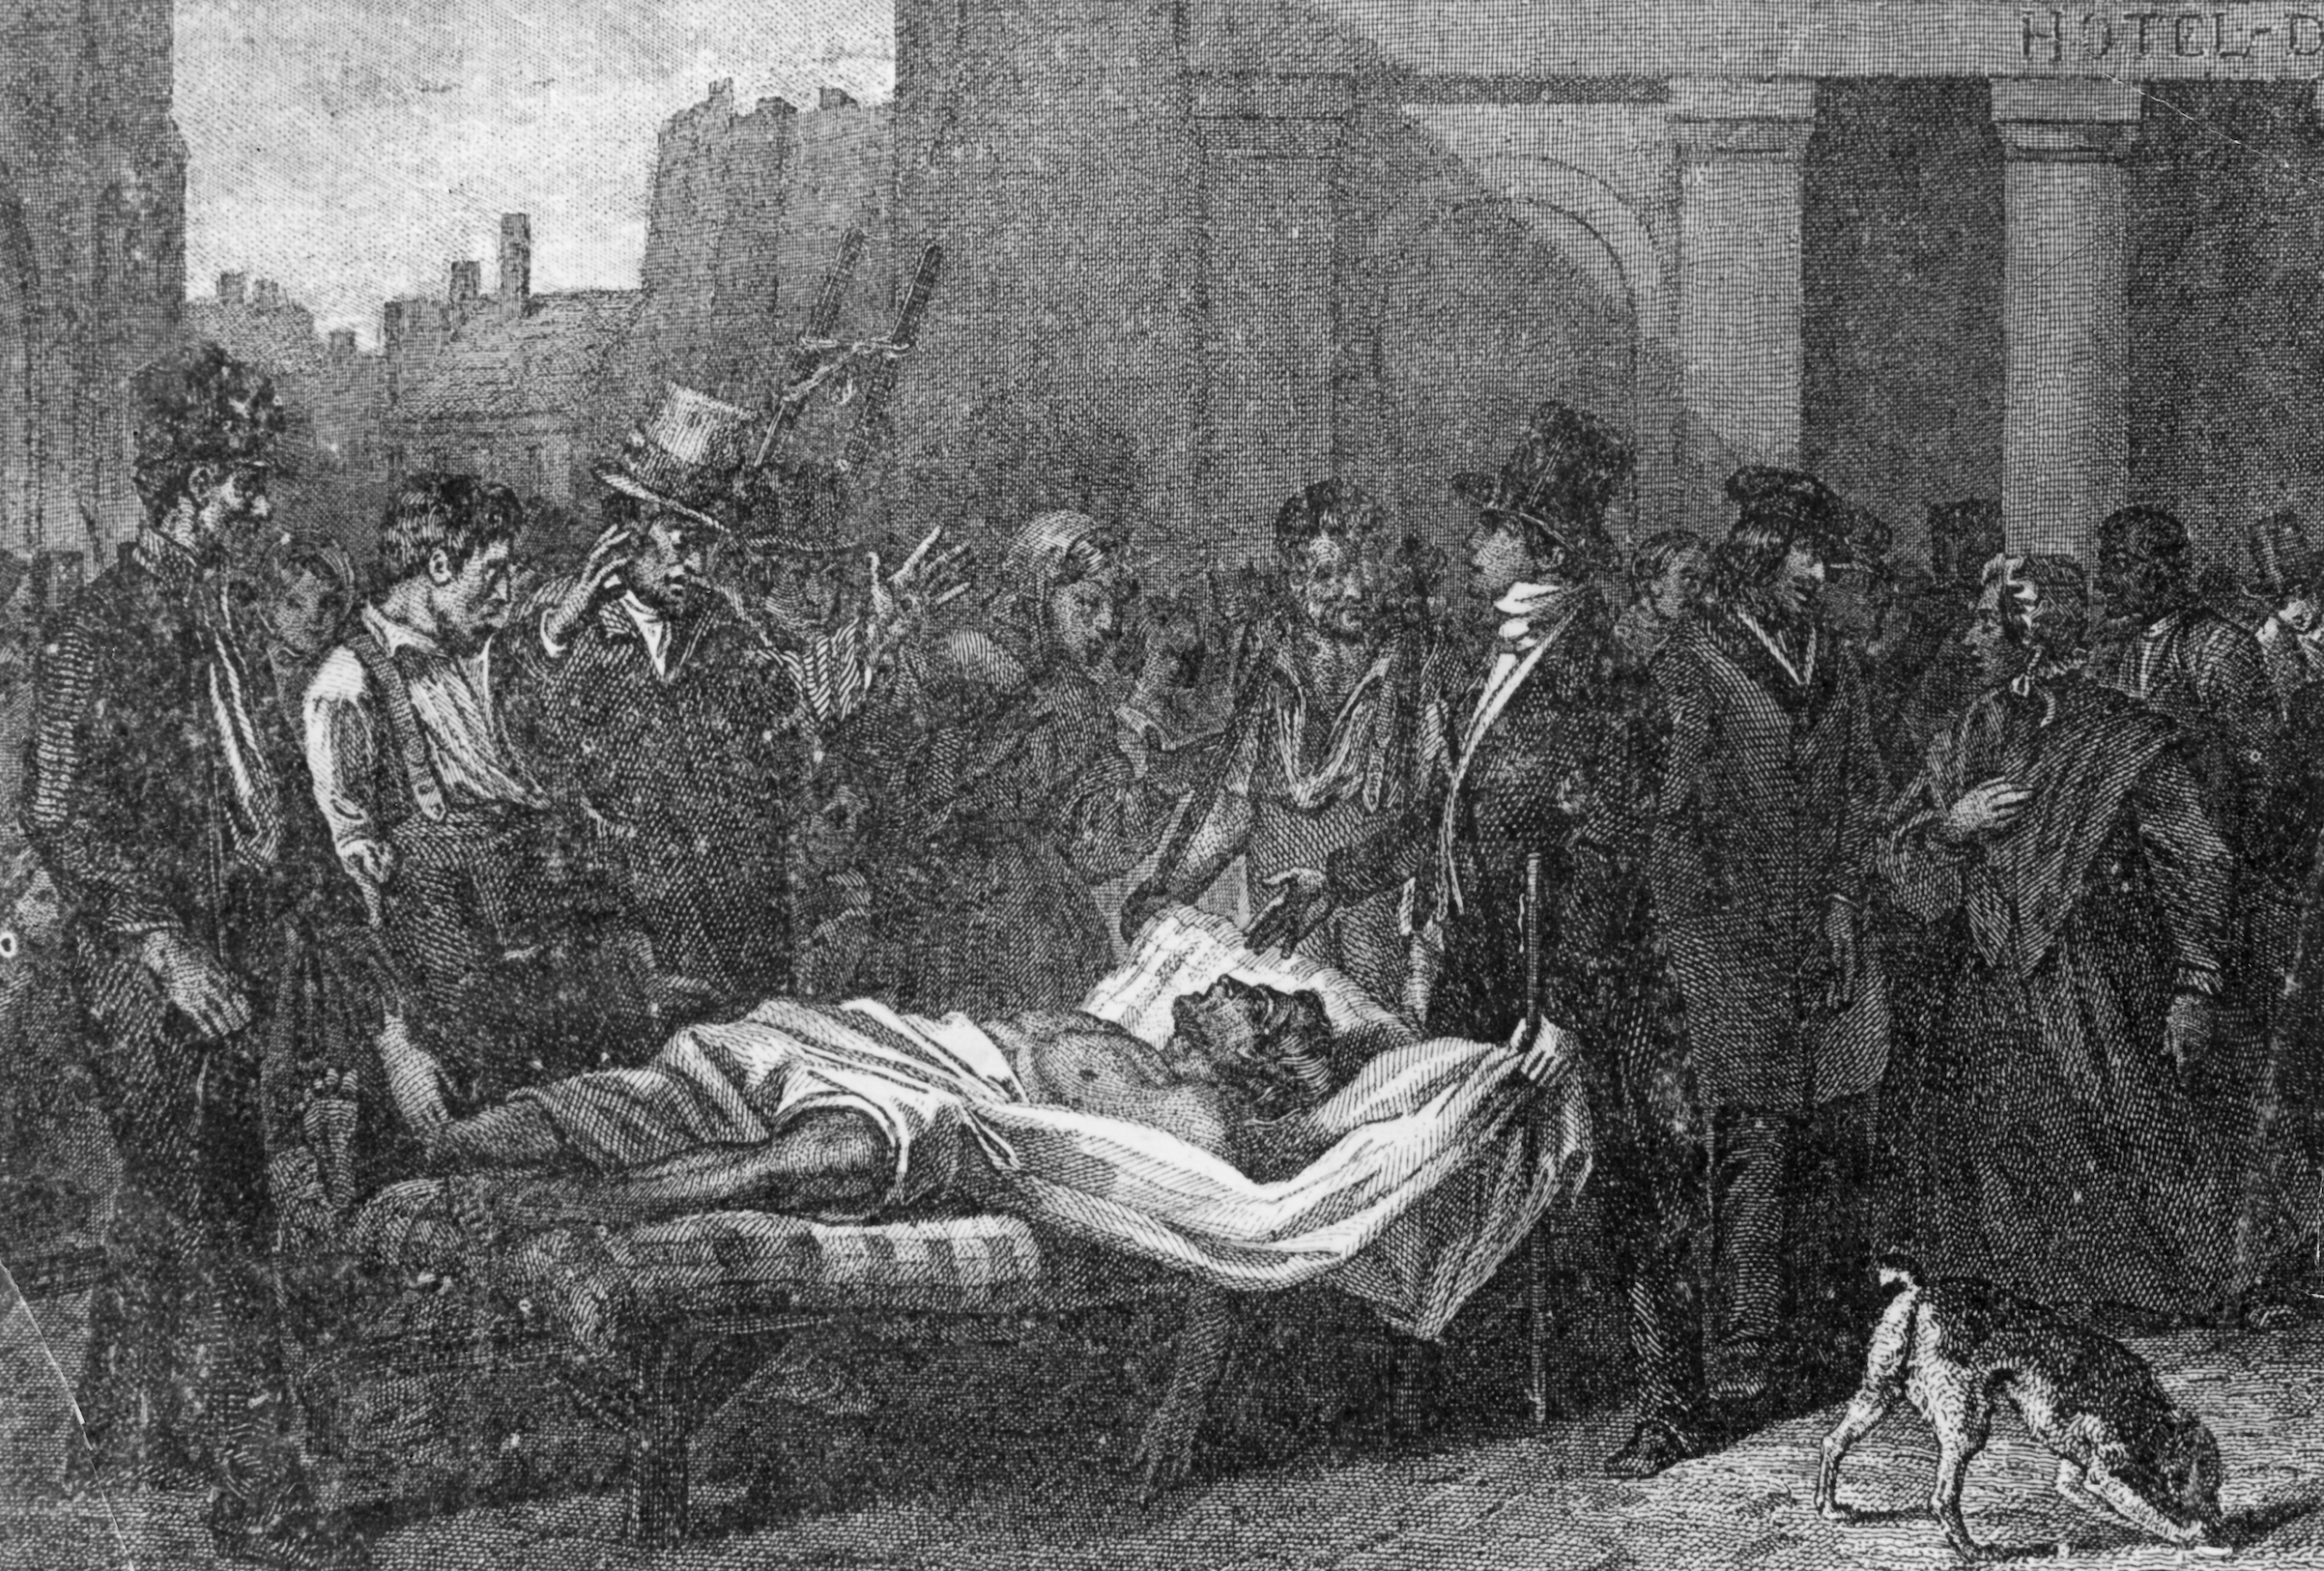 A victim of the cholera epidemic in Paris, 1832.